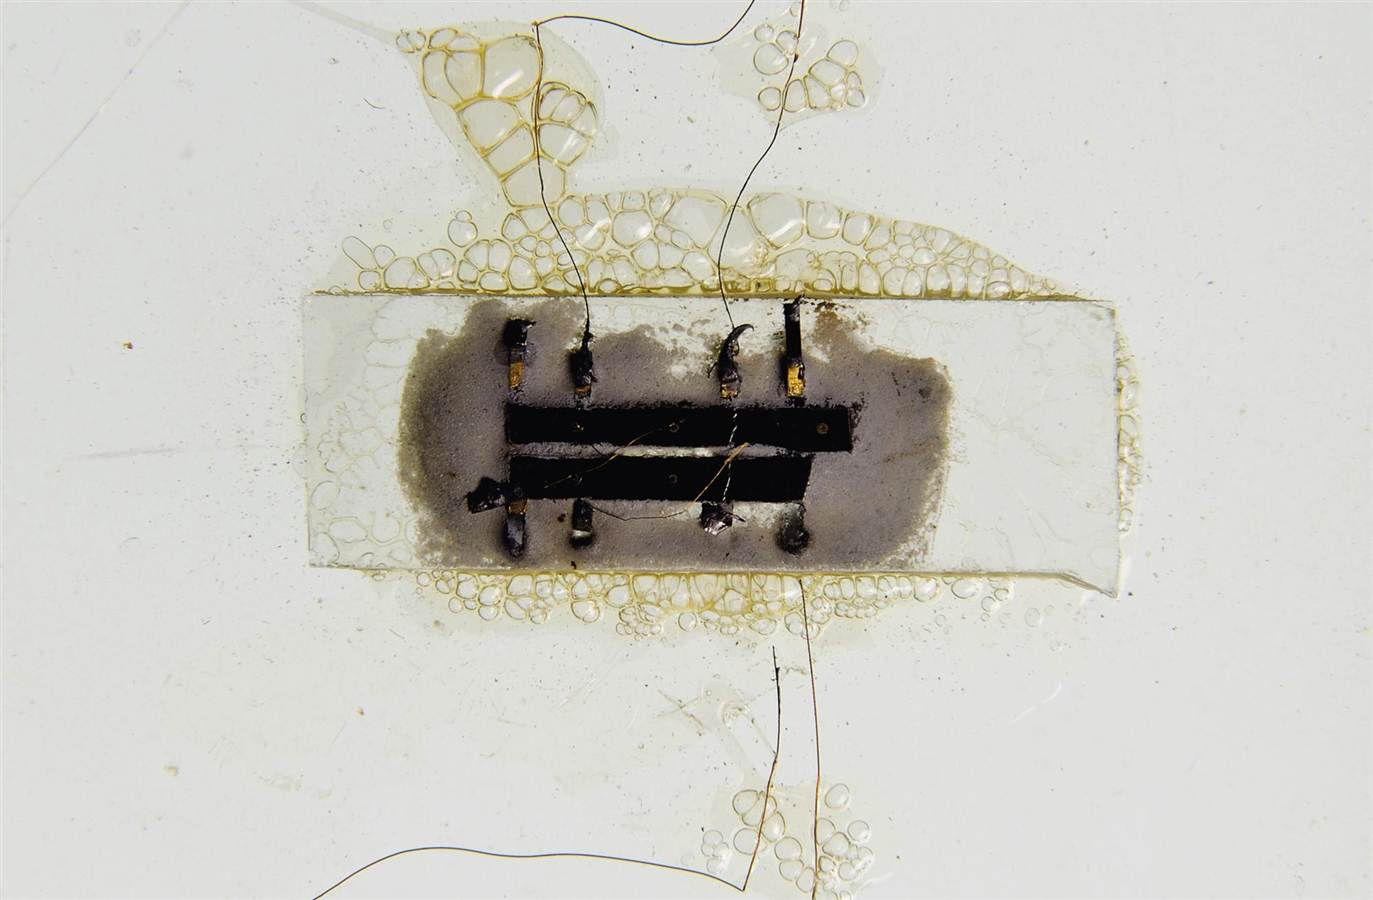 The First Microchip Handmade in 1958 by Jack Kilby